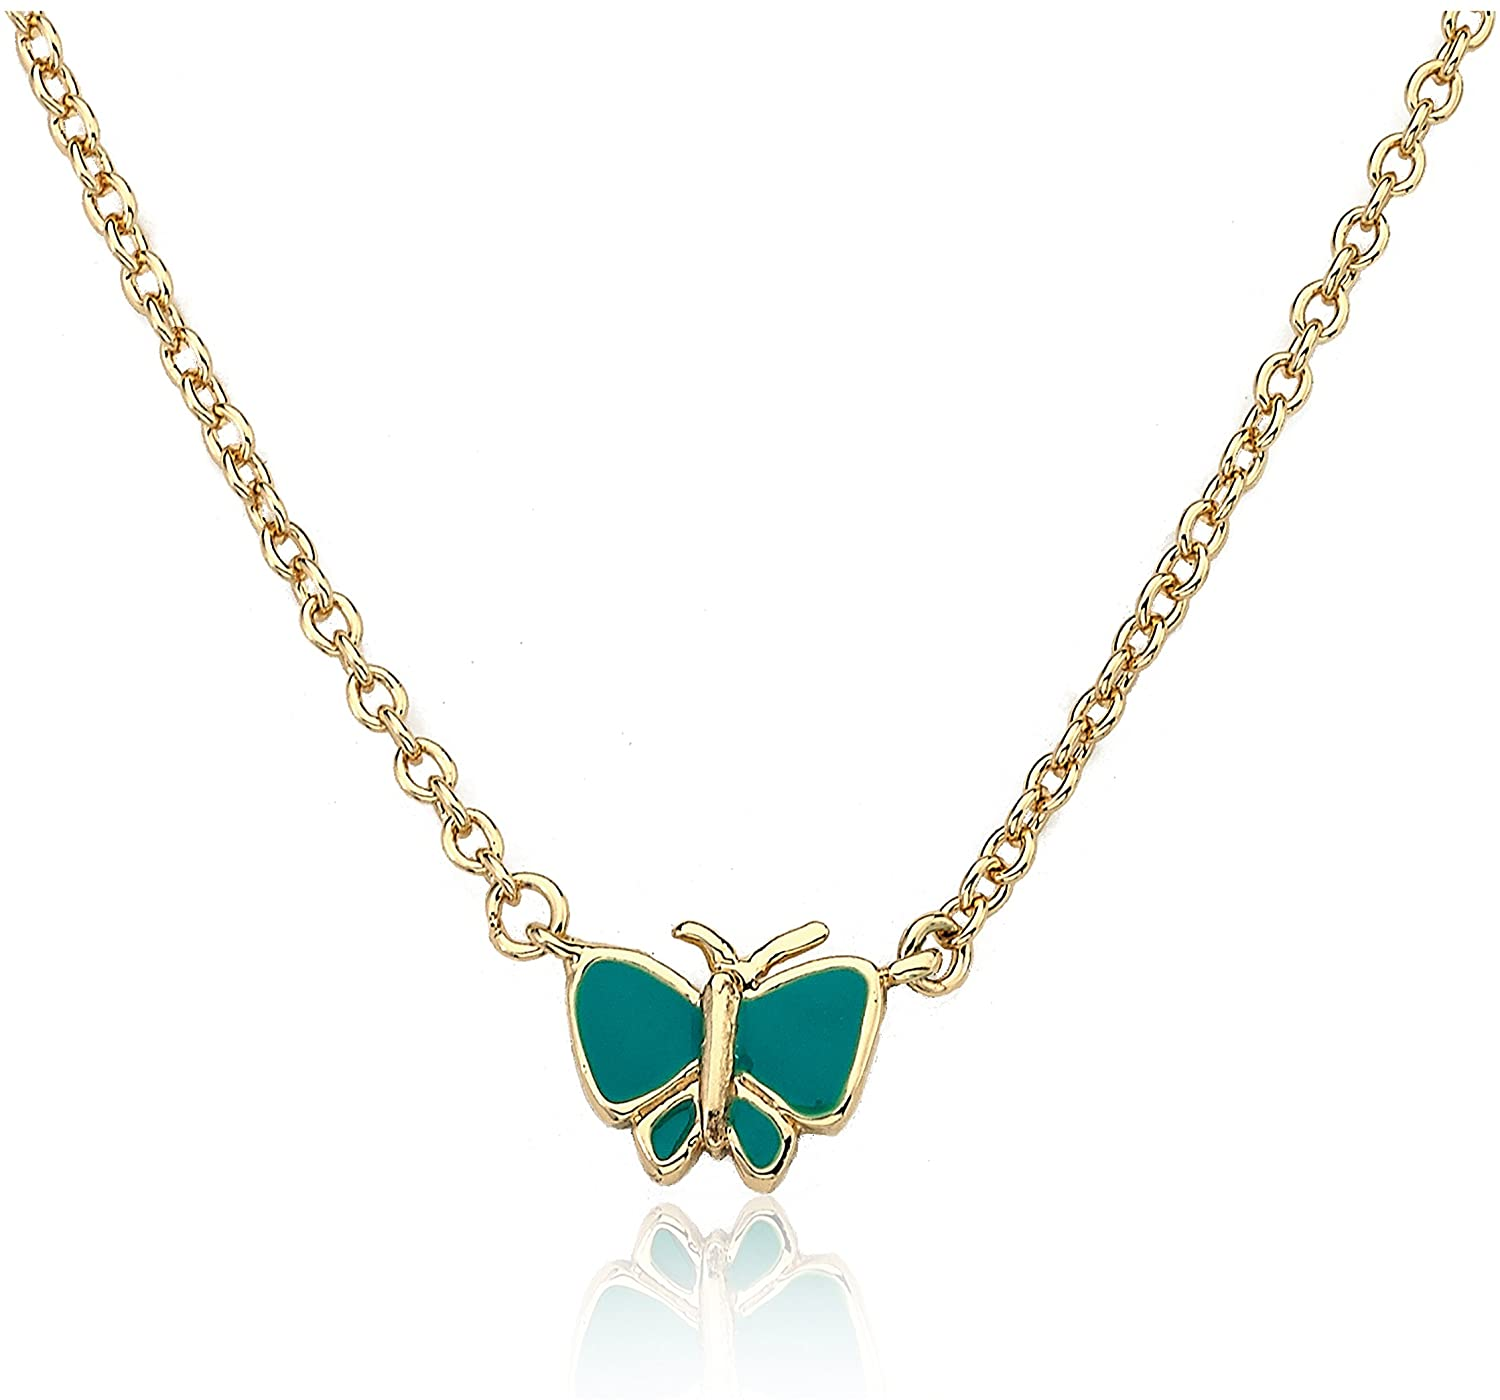 Little Miss Twin Stars Charming Treats 14k Gold-Plated Hot Pink Butterfly Chain Necklace